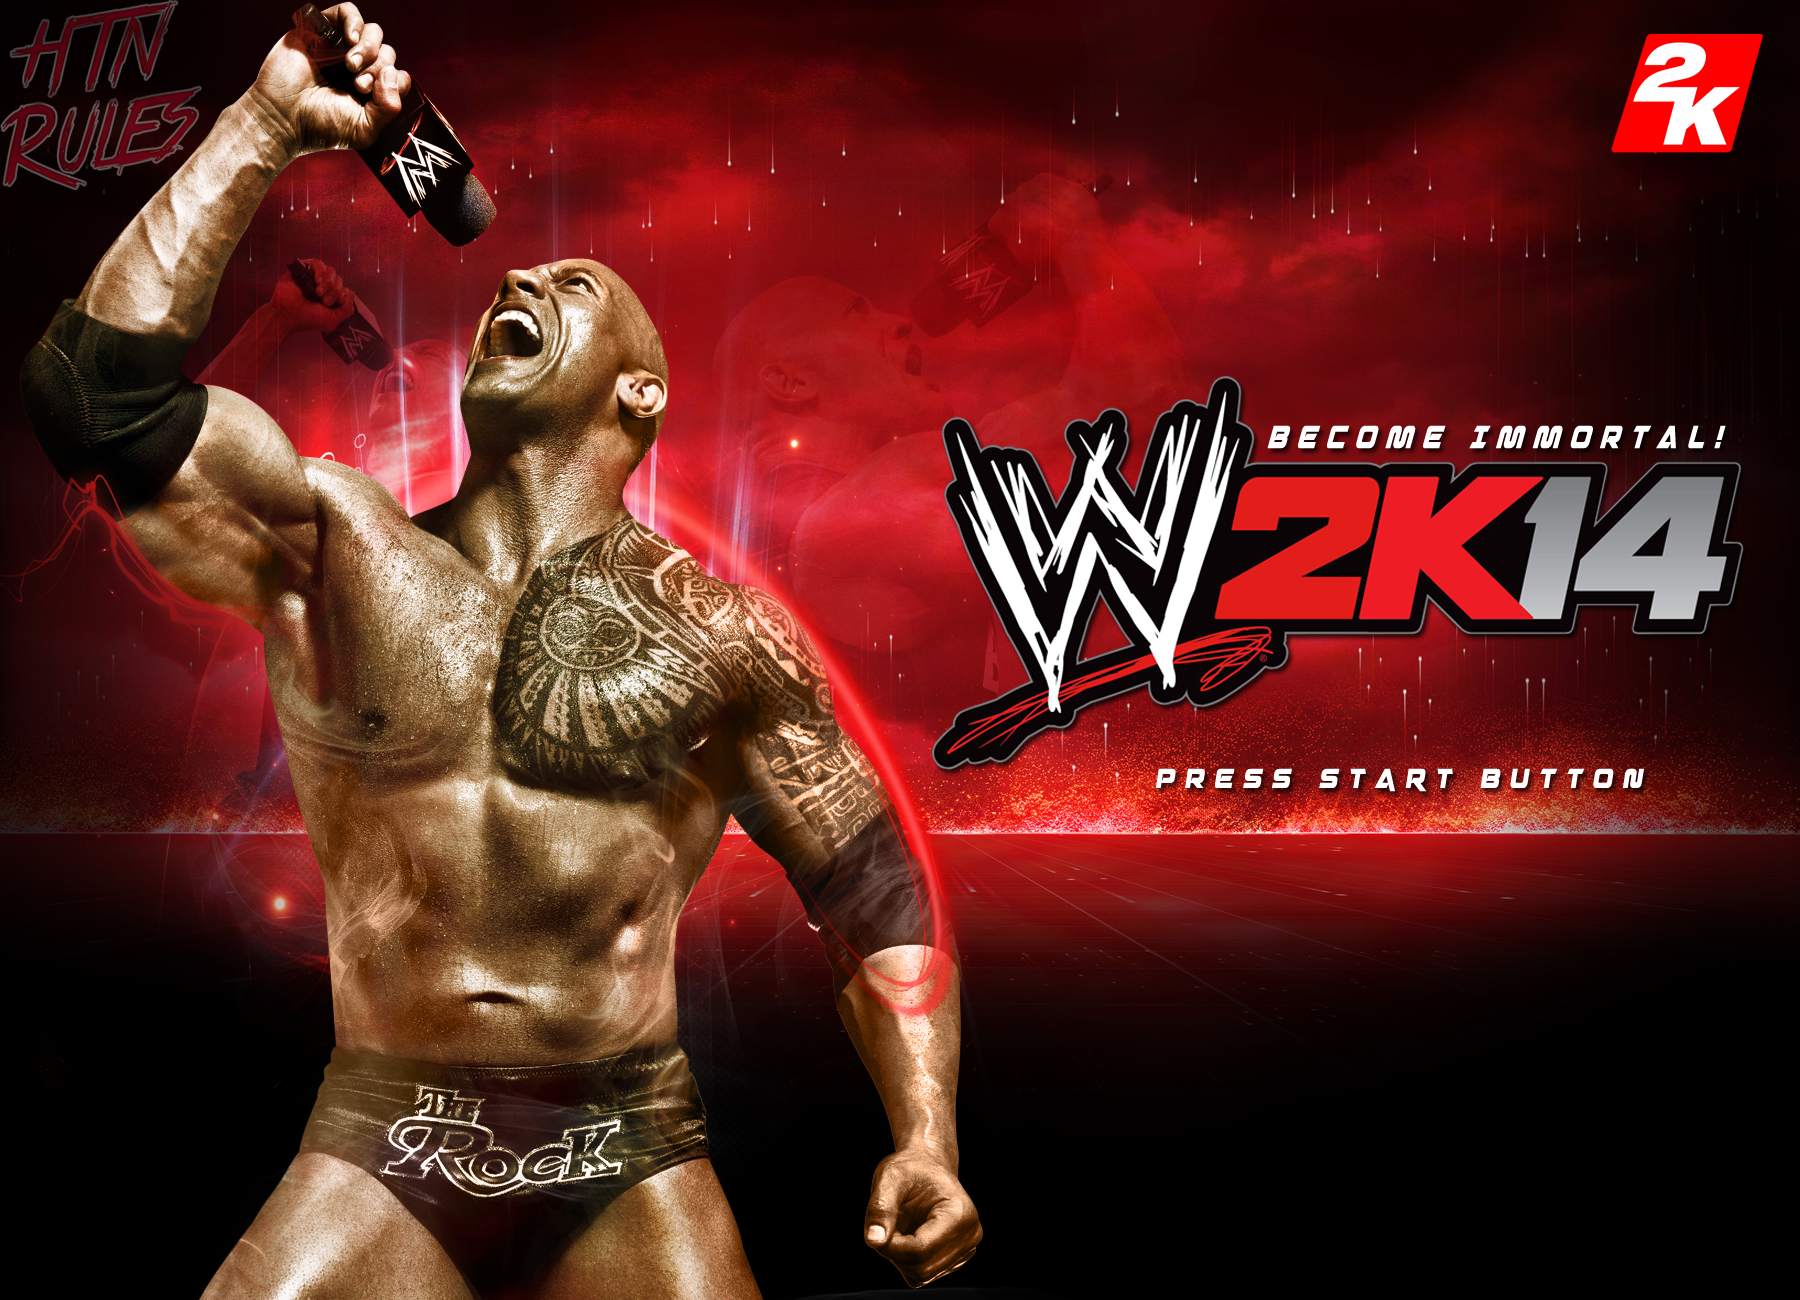 wwe 2k14 custom start up screen v2htn4ever on deviantart